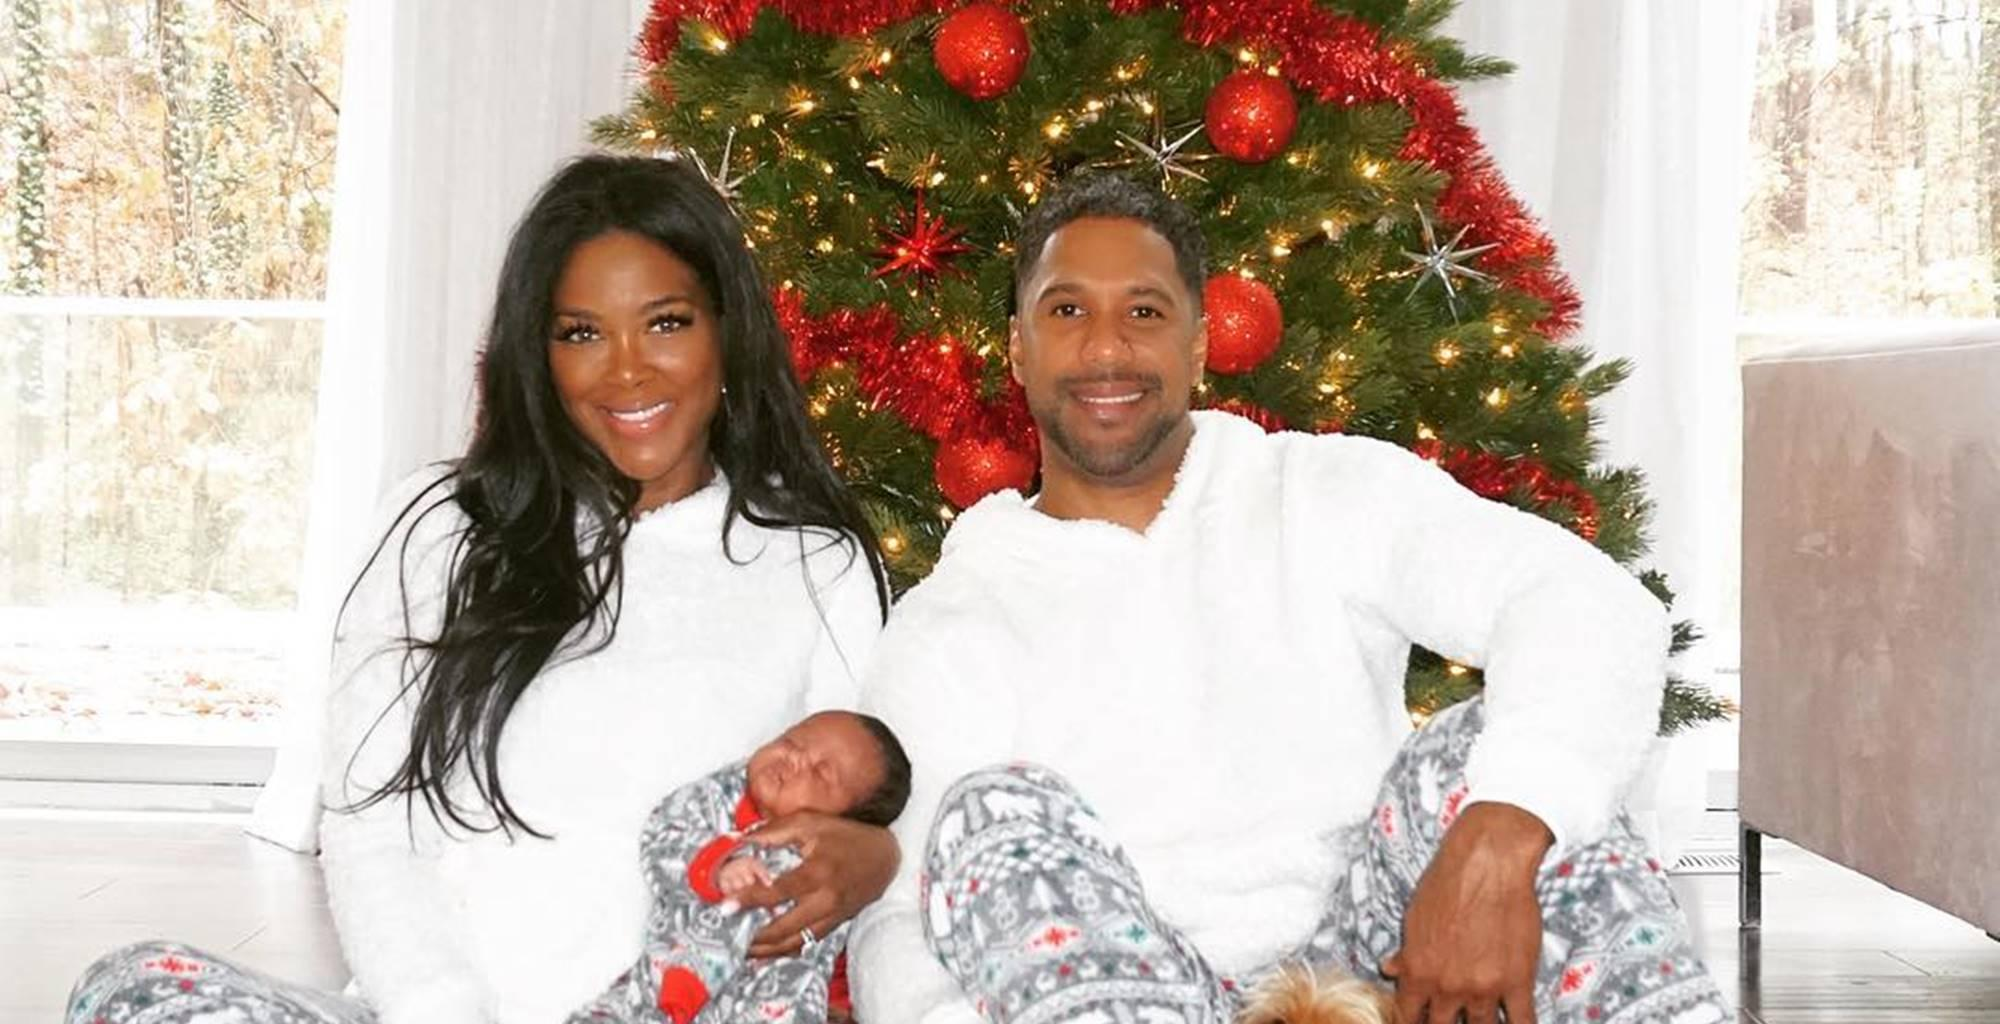 Did Kenya Moore Stage Her New Photo Shoot With Baby Brooklyn And Marc Daly?